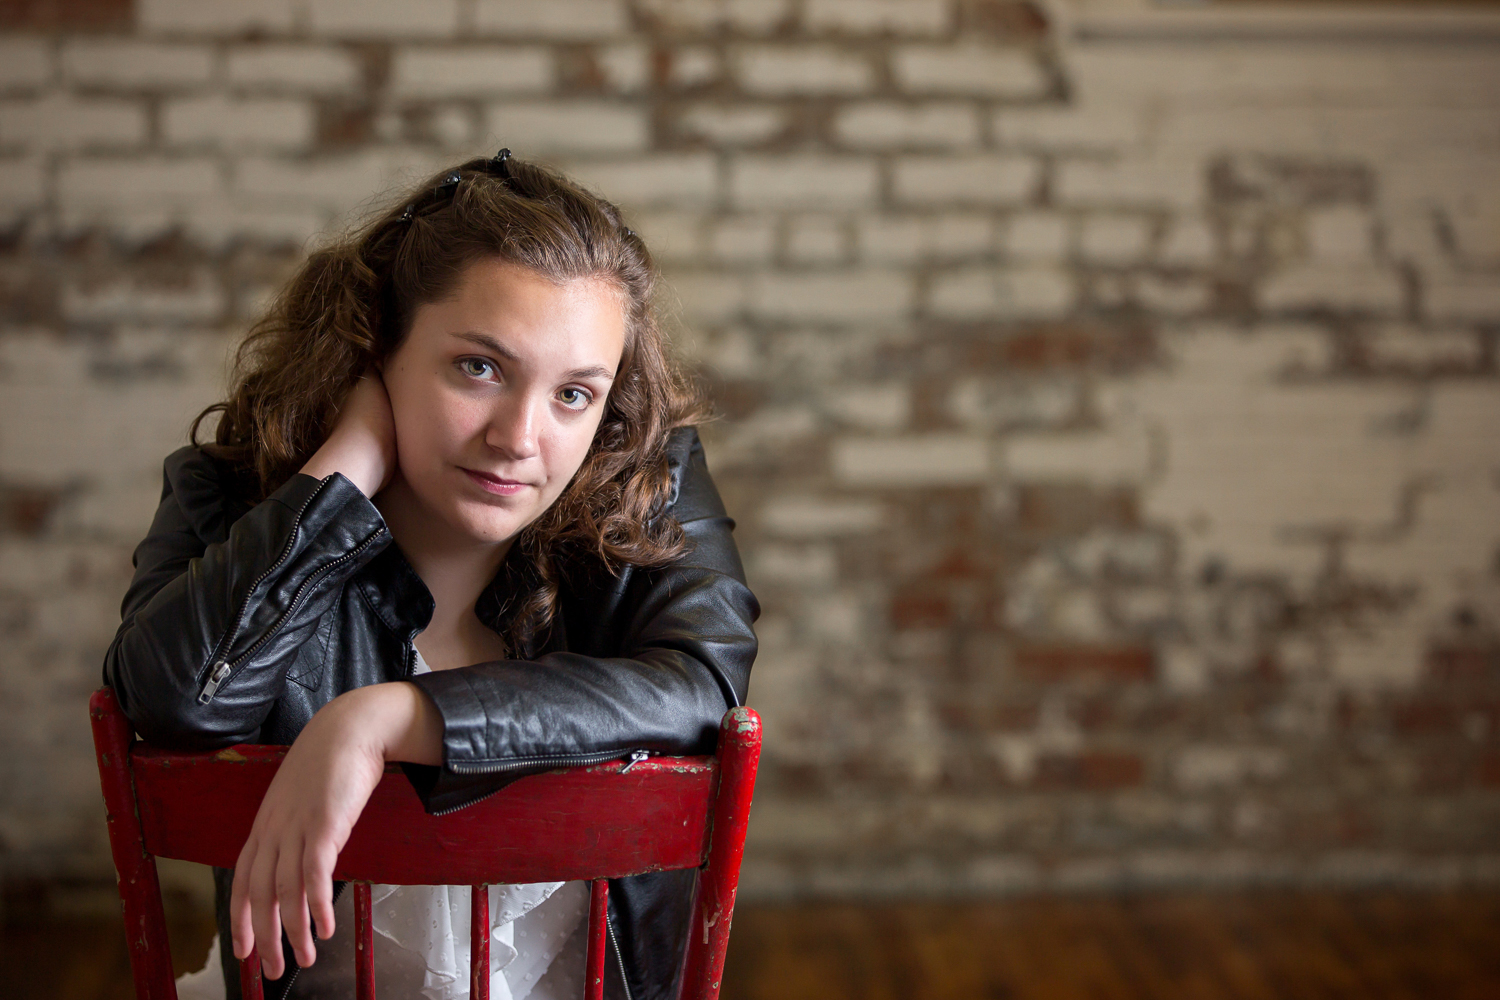 brunette senior girl wearing a white top and leather jacket sitting backward in a red chair with grungy pealing white paint on exposed brick wall behind her in Wooster Ohio